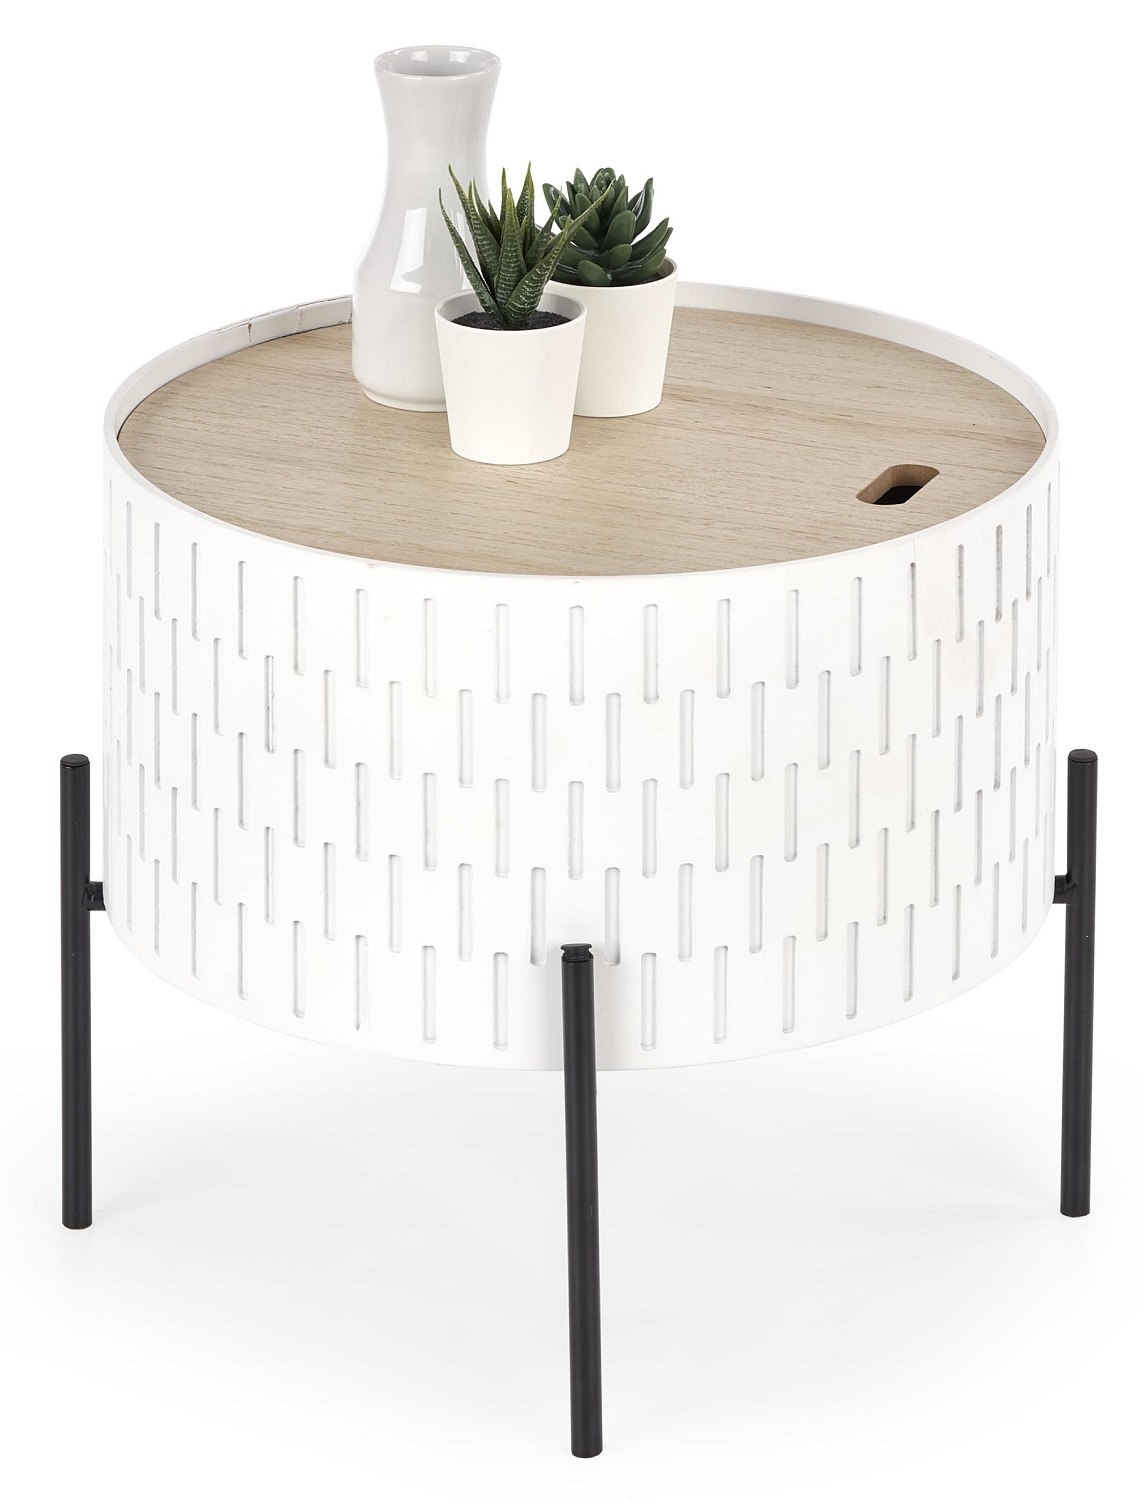 Ronde salontafel Sintra 35 cm breed in wit | Home Style